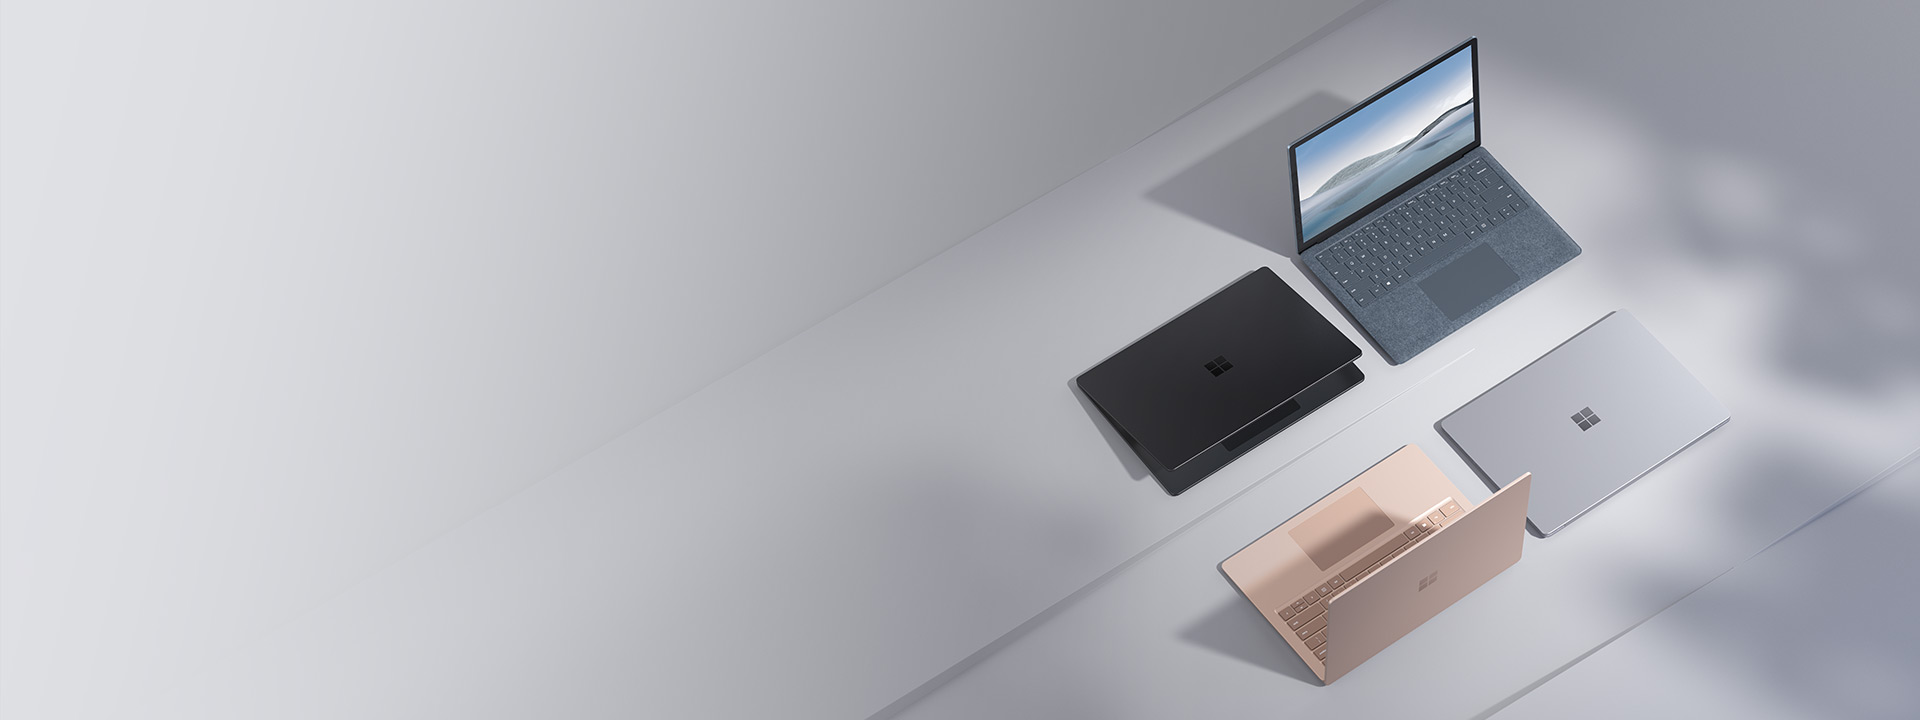 Surface Laptop 4 in alcantara ice blue, platinum, sandstone and matte black; clockwise from top.